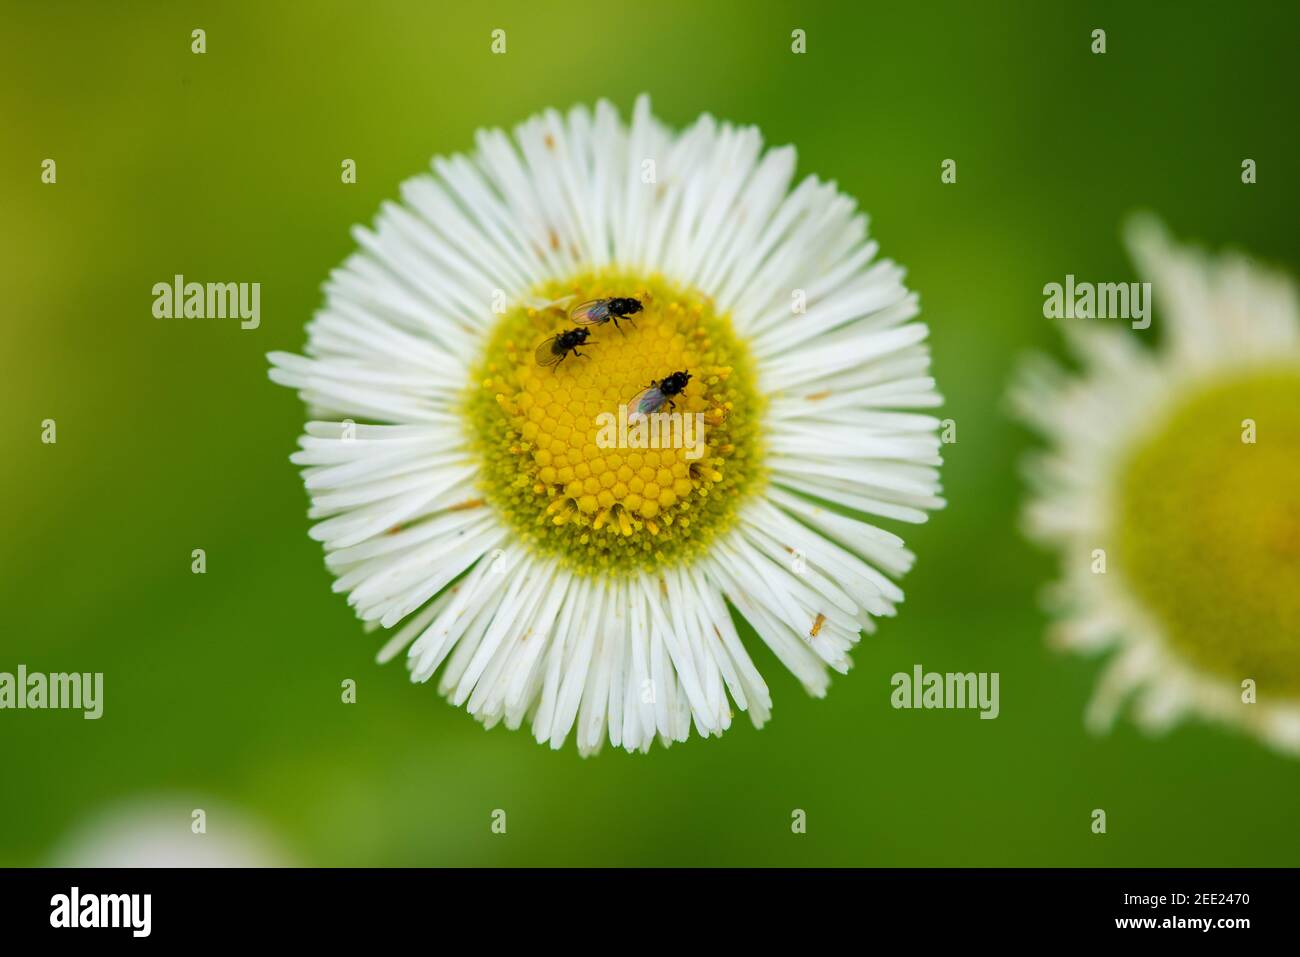 Tiny insects forage on a flower head. Stock Photo